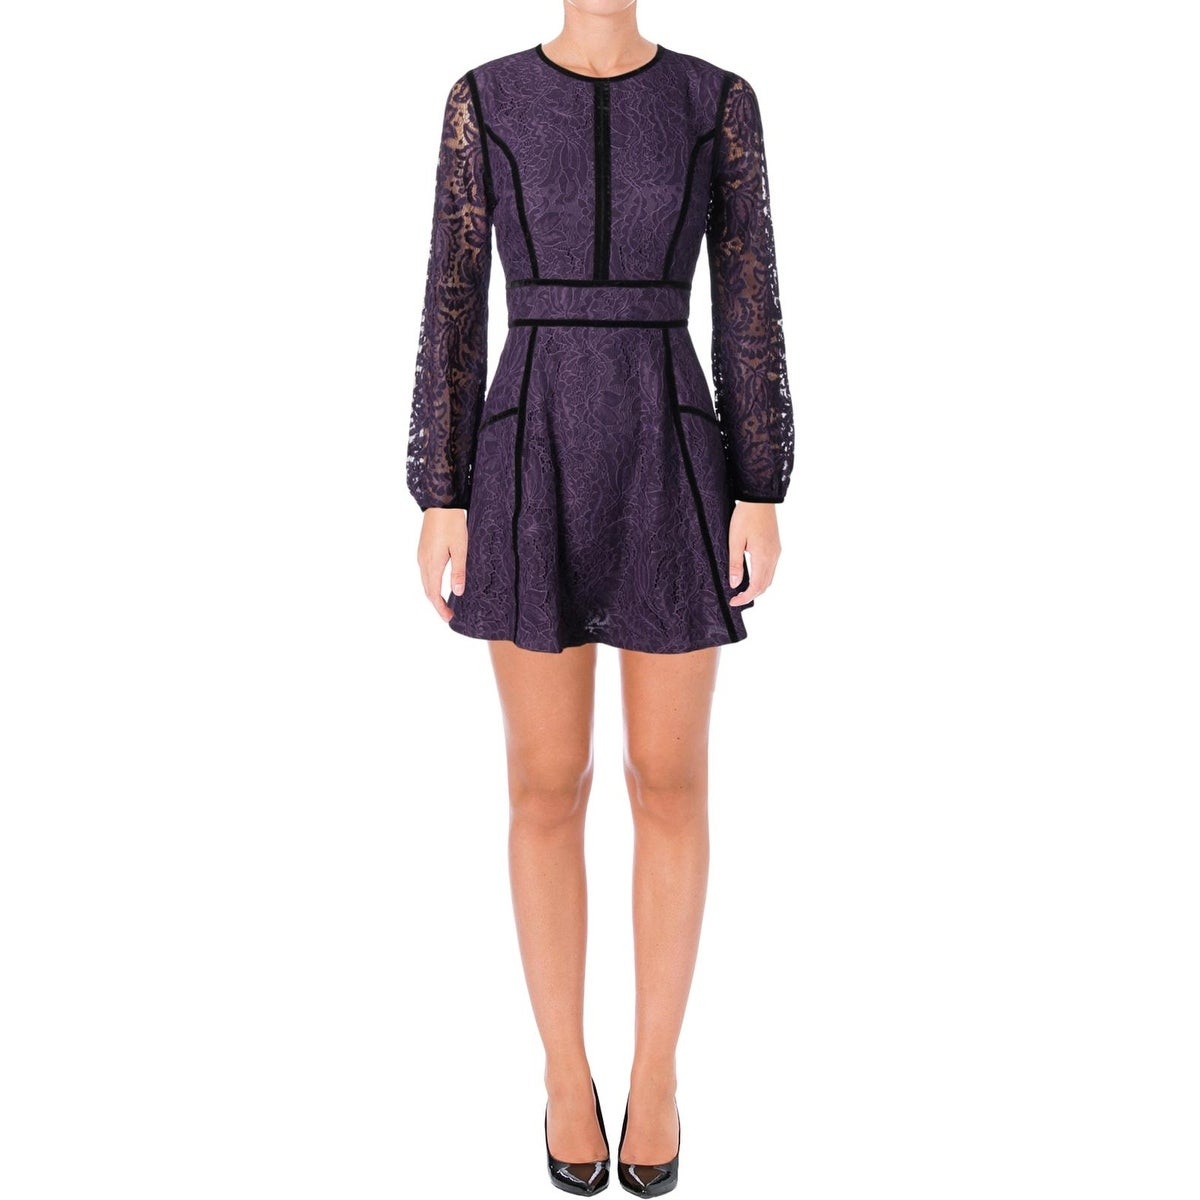 Shop Juicy Couture Black Label Womens Leafy Cocktail Dress Lace Mini - Free  Shipping Today - Overstock - 23476403 c72d708ed